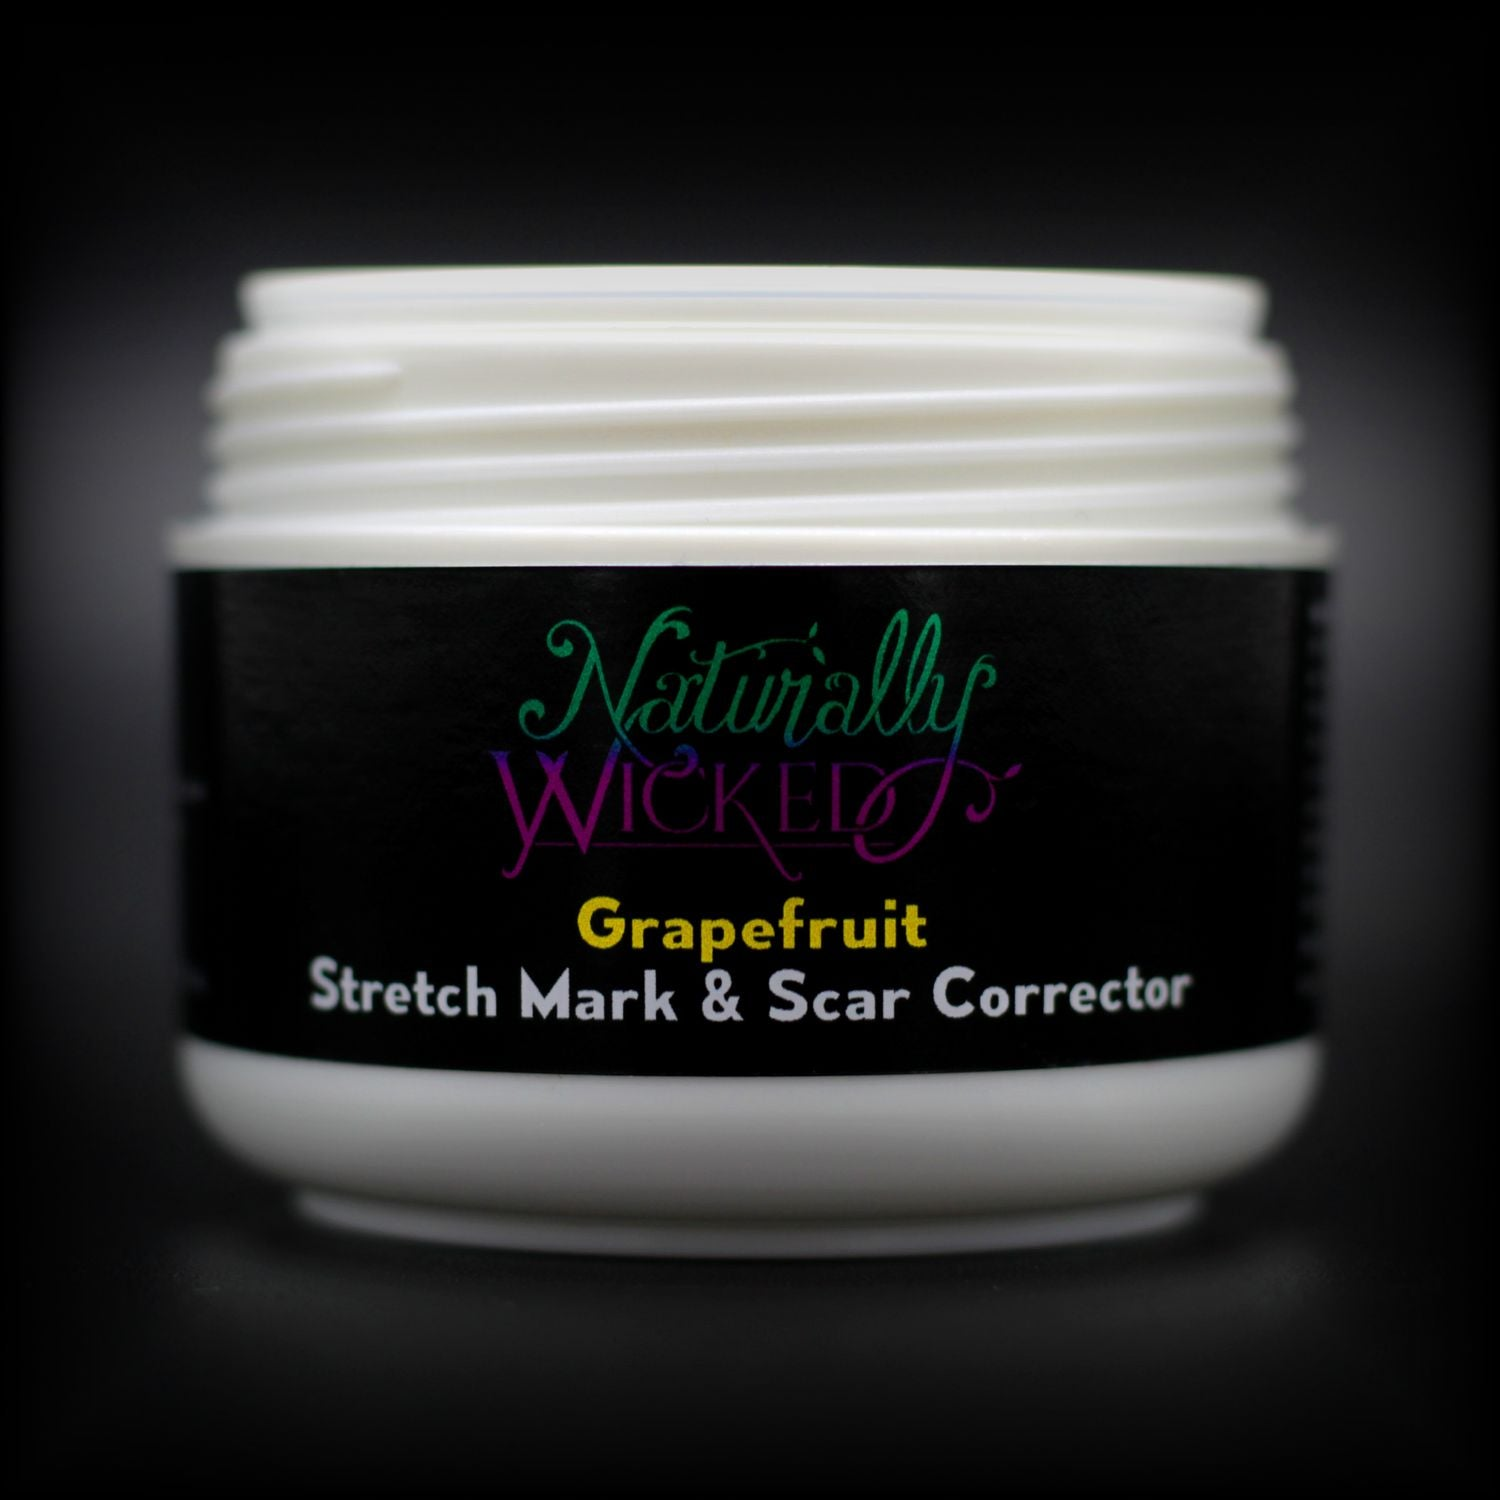 Naturally Wicked Grapefruit Stretch Mark & Scar Corrector Without Lid Exposing Seal & Screw Connection